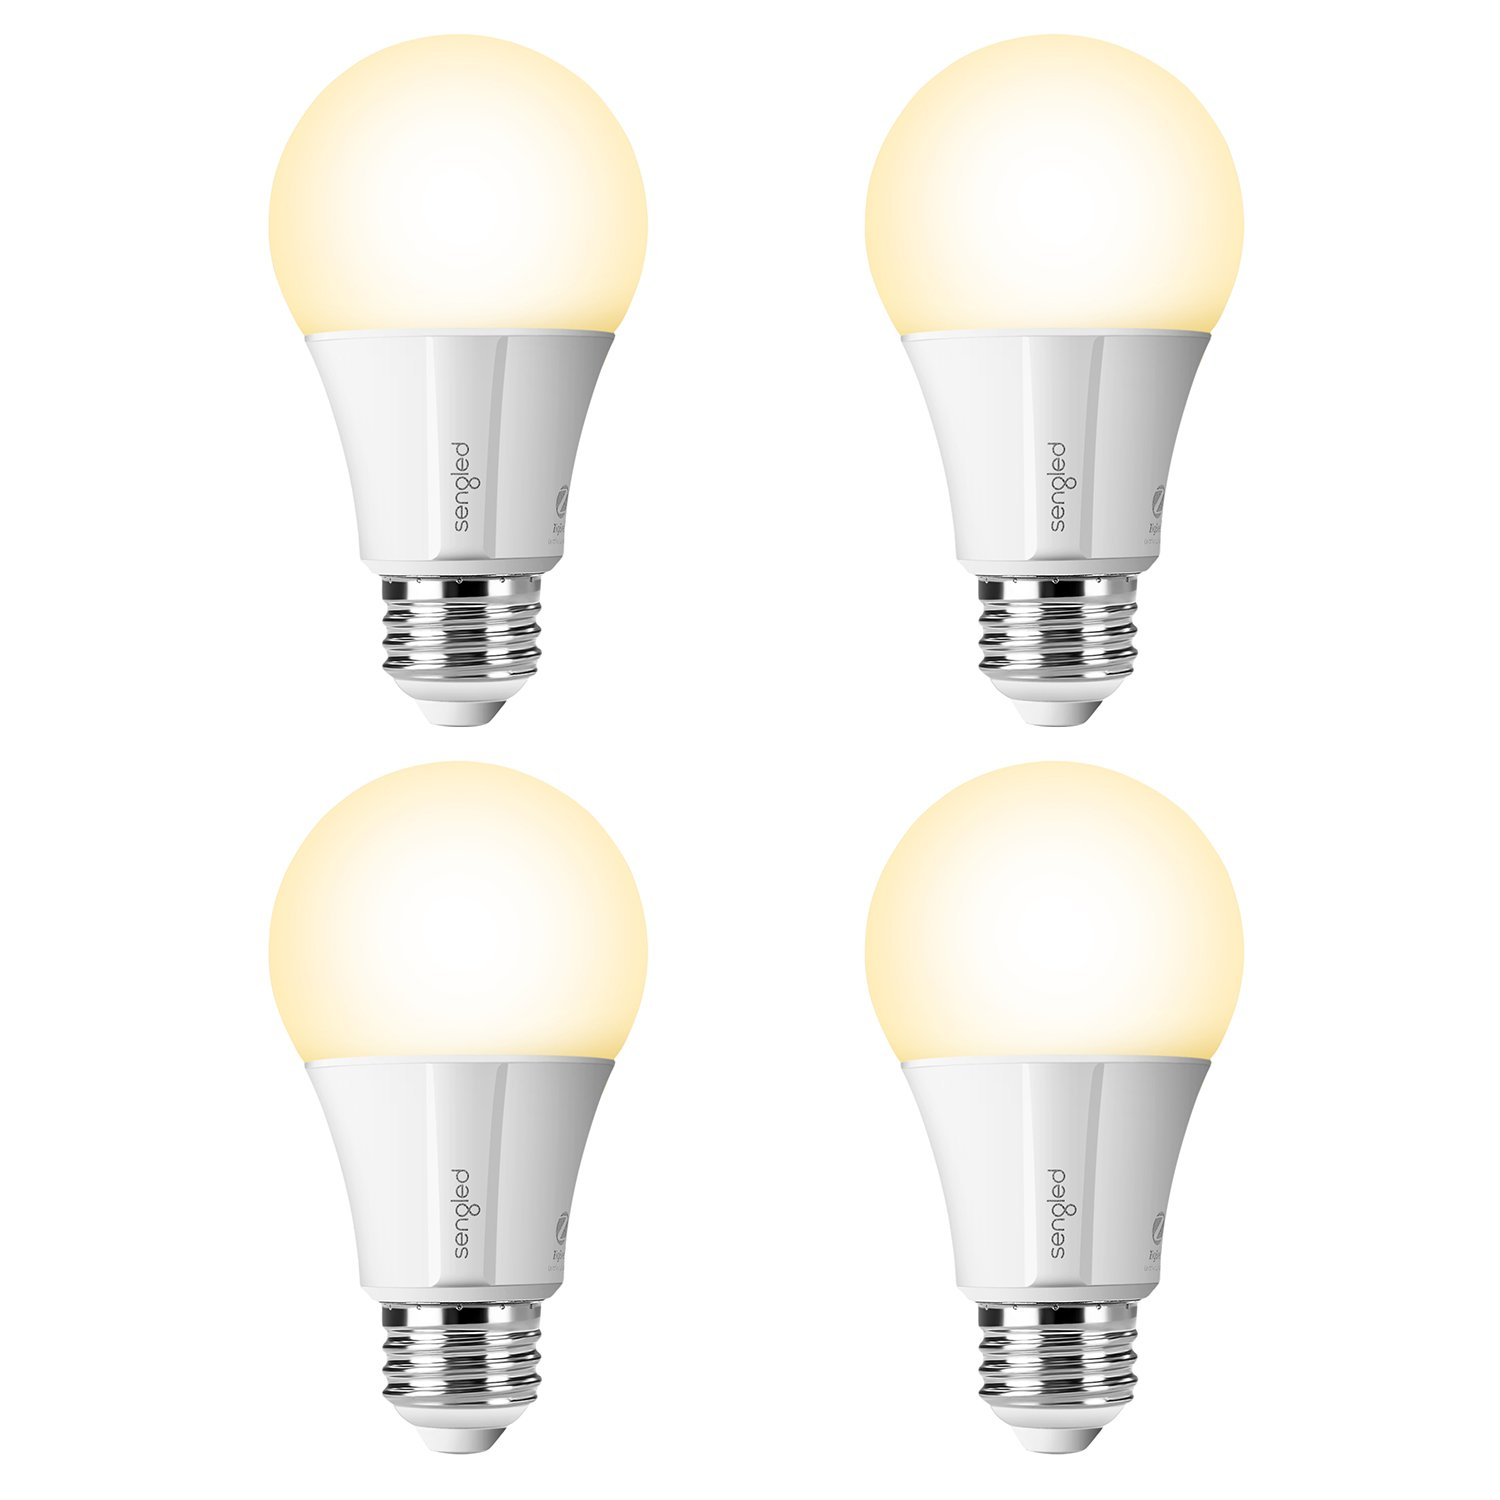 Sengled Smart LED Soft White (Element Classic) Bulb, Hub Required, 2700K, A19 60W Equivalent, Works With Alexa, Google Assistant & SmartThings, 4 Pack